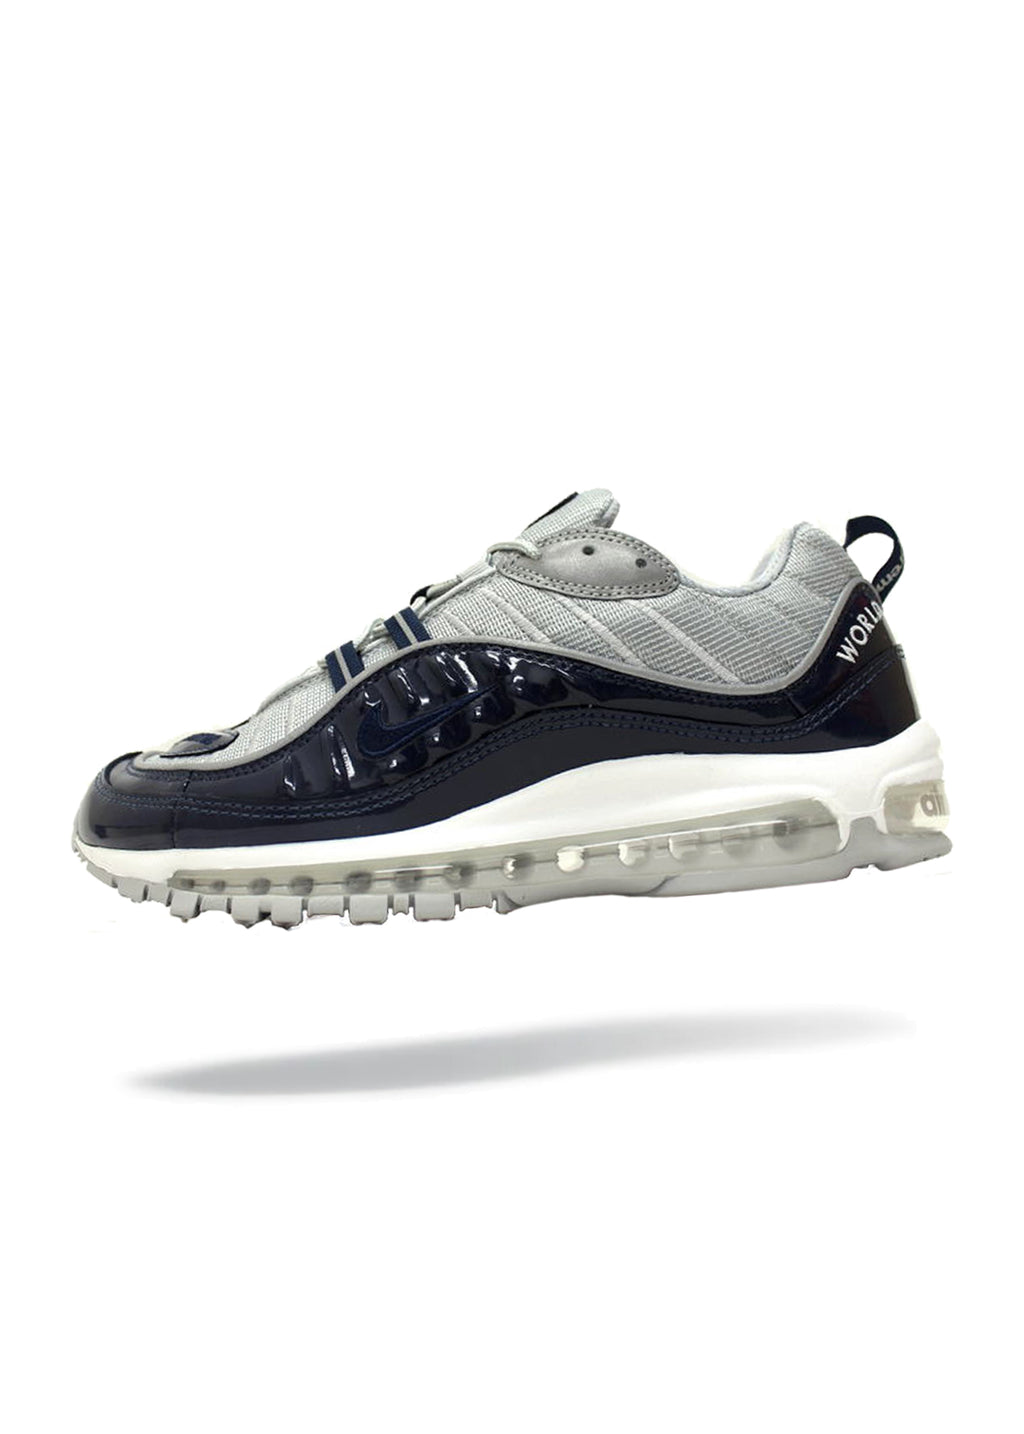 Air Max 98 Supreme Obsidian